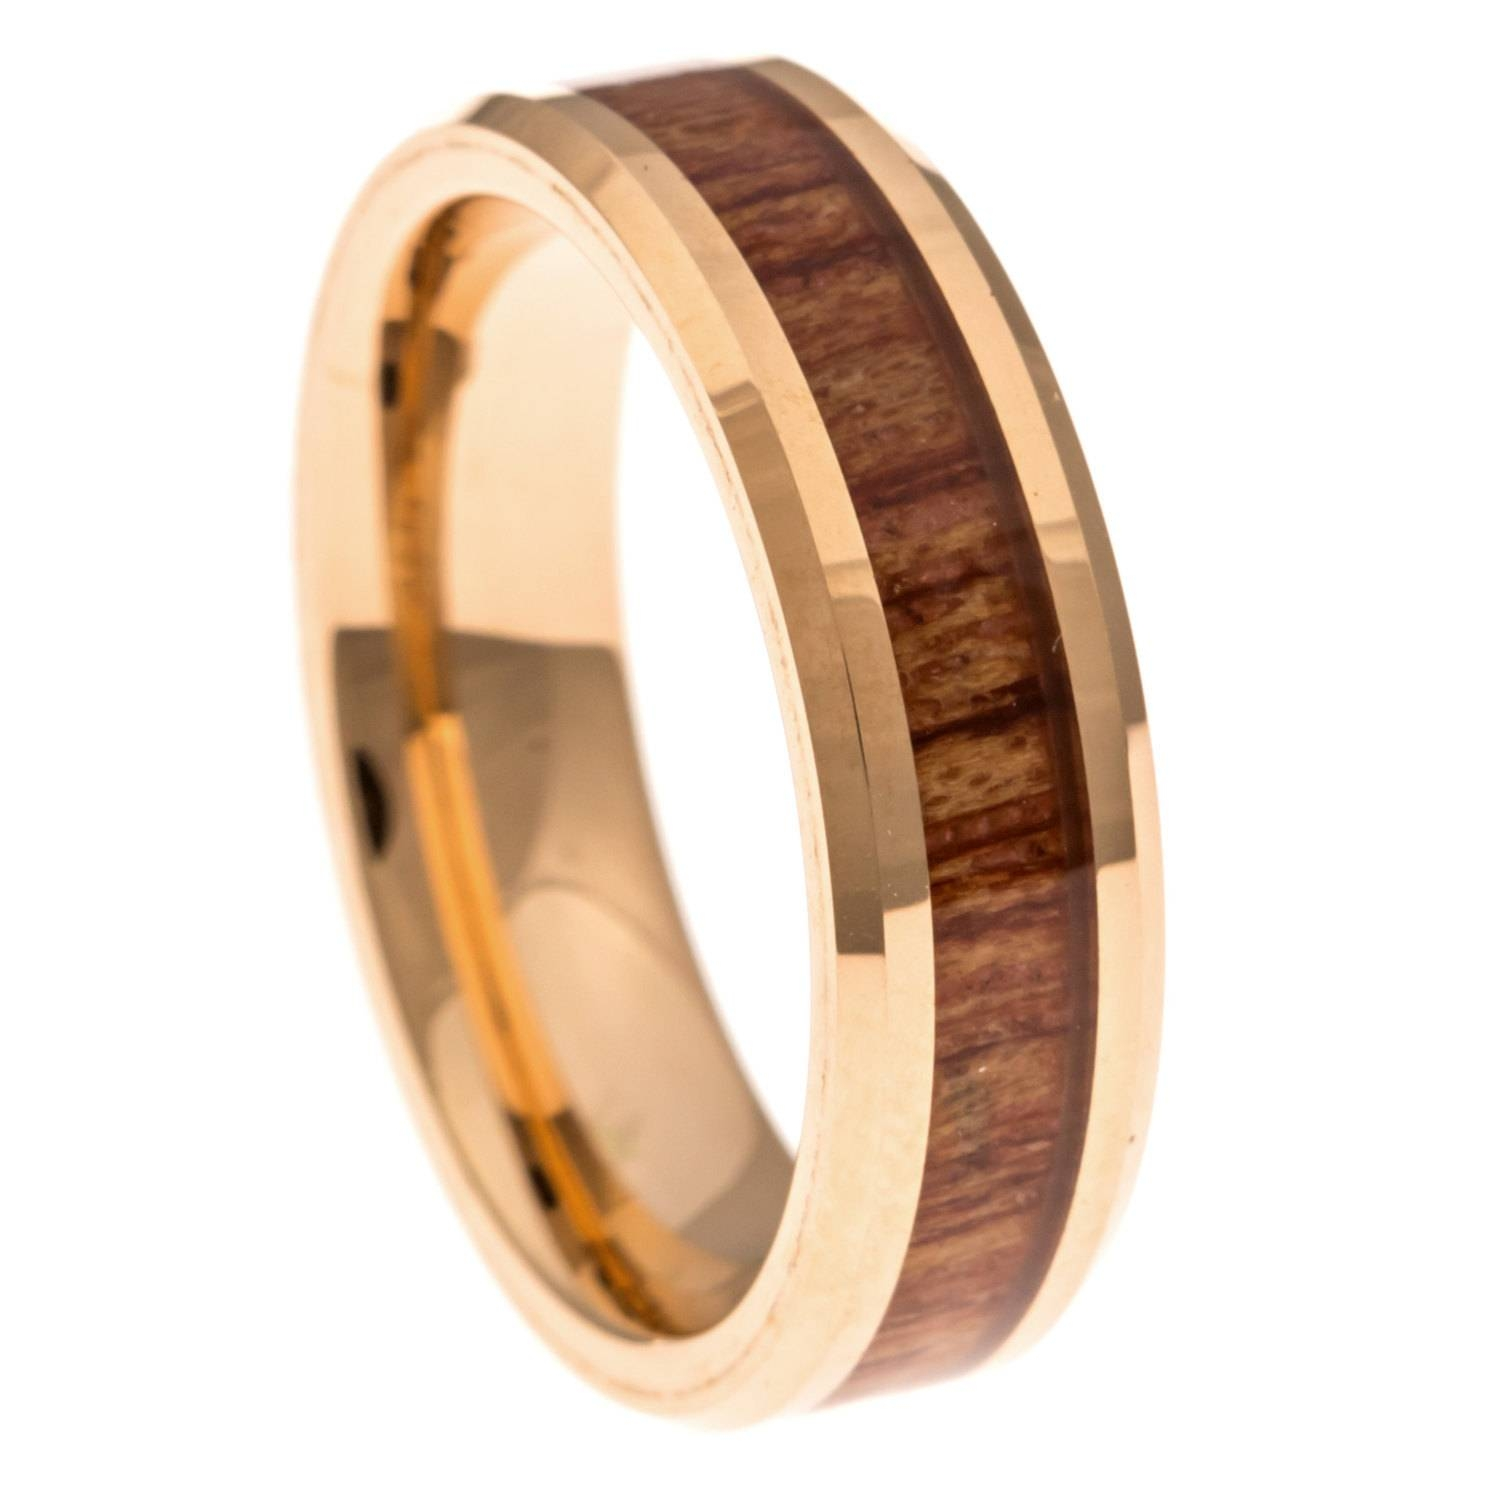 Men's Wedding Band Rose Gold Hawaiian Koa Wood Inlay 6Mm. In Wood Inlay Wedding Rings (Gallery 12 of 15)